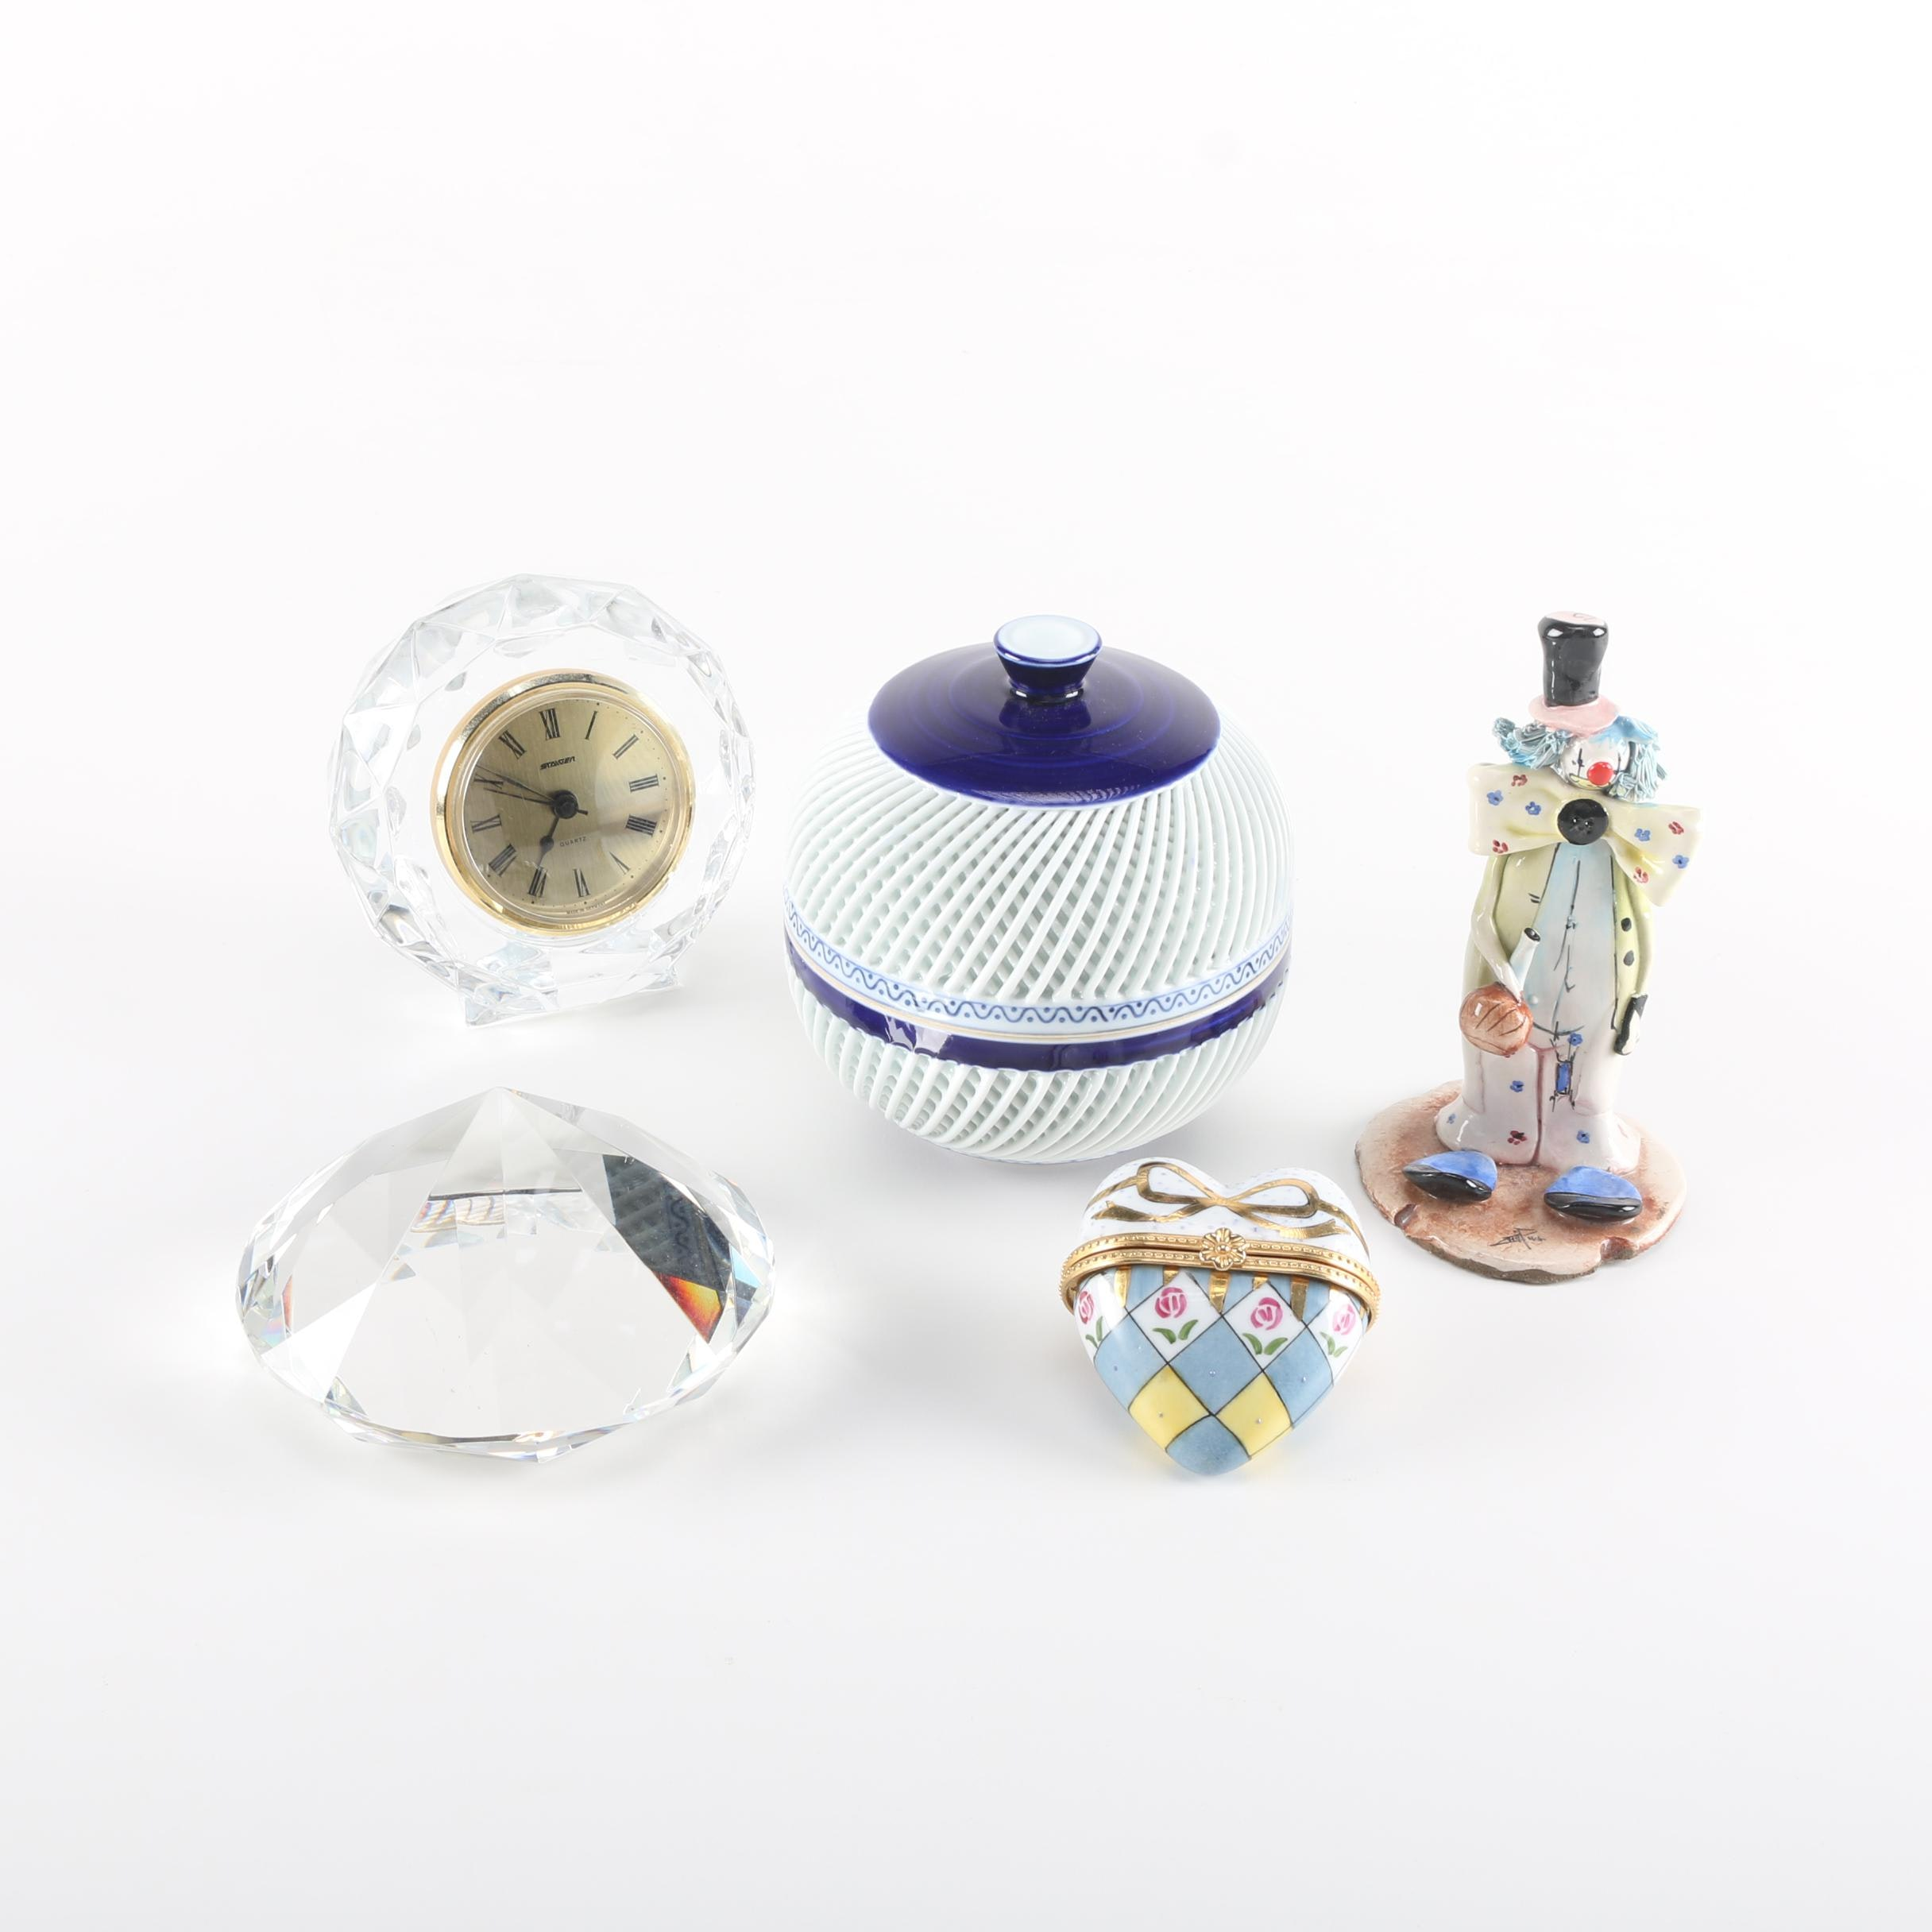 An Assortment of Decorative Items